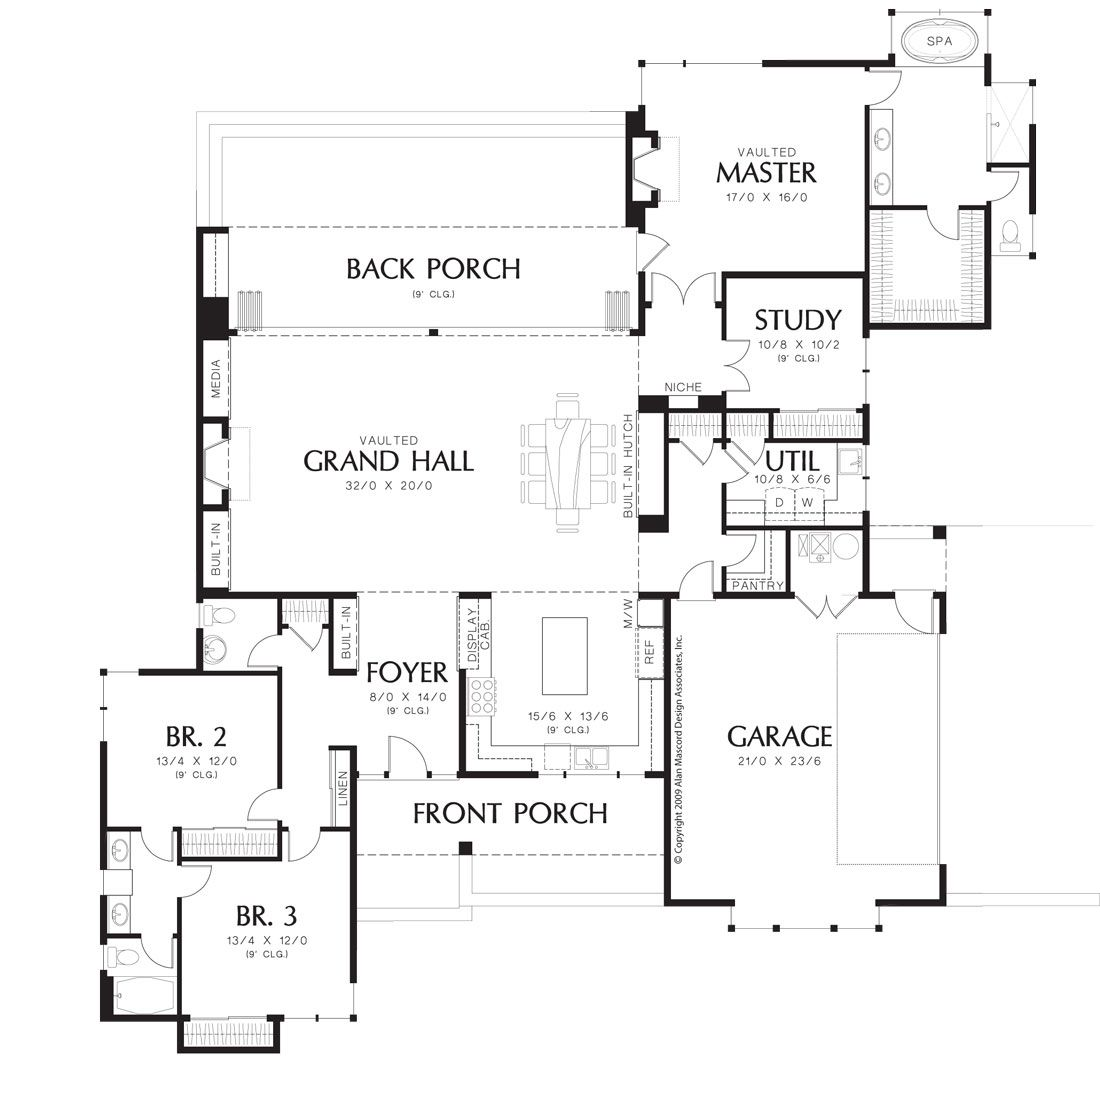 Stanley 1494 3 Bedrooms And 2 Baths The House Designers Modern Style House Plans Contemporary House Plans Shed House Plans